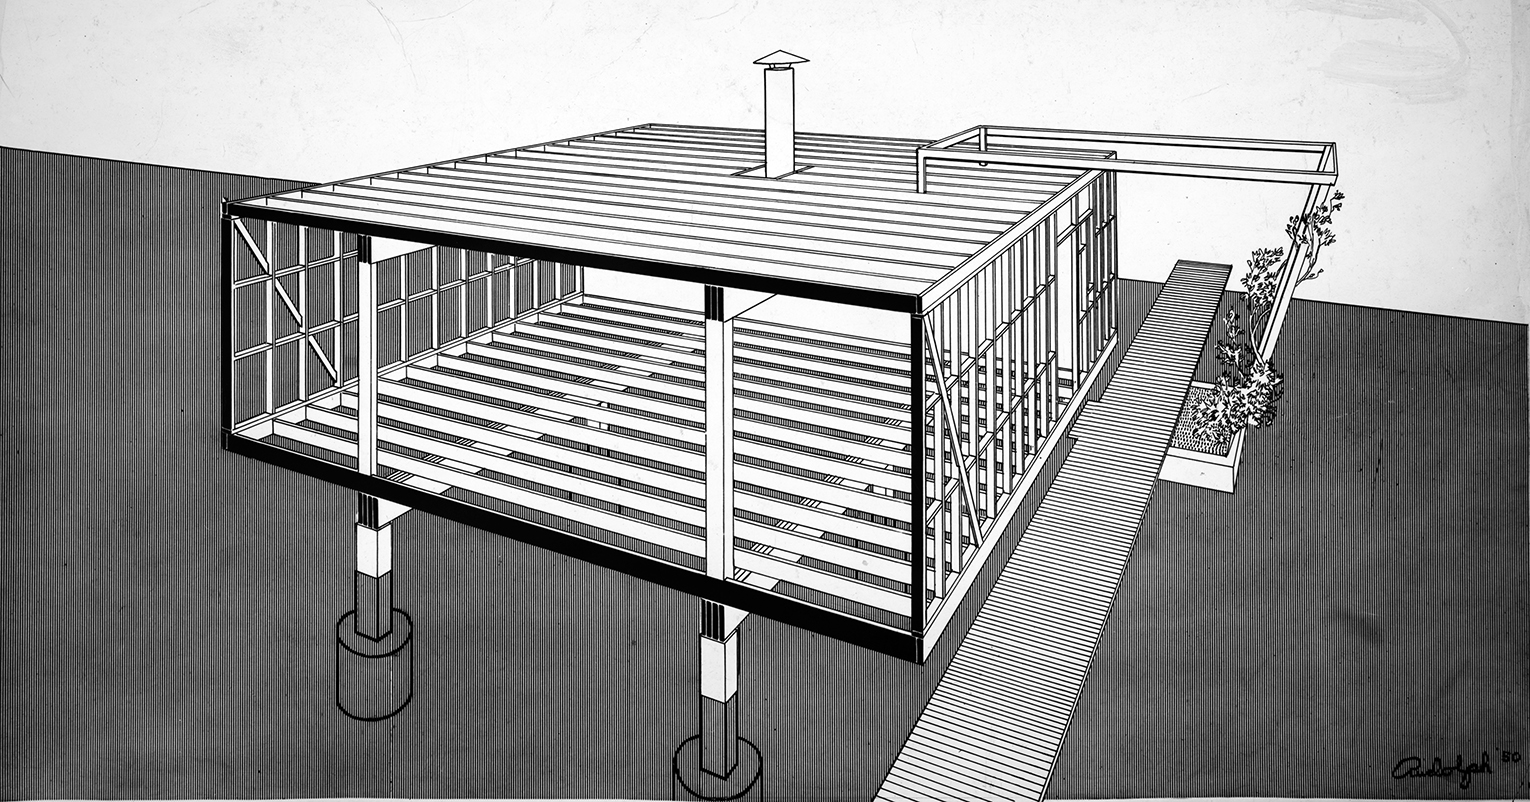 Miller Guest House, Casey Key, Florida. Perspective Rendering of Framing System.